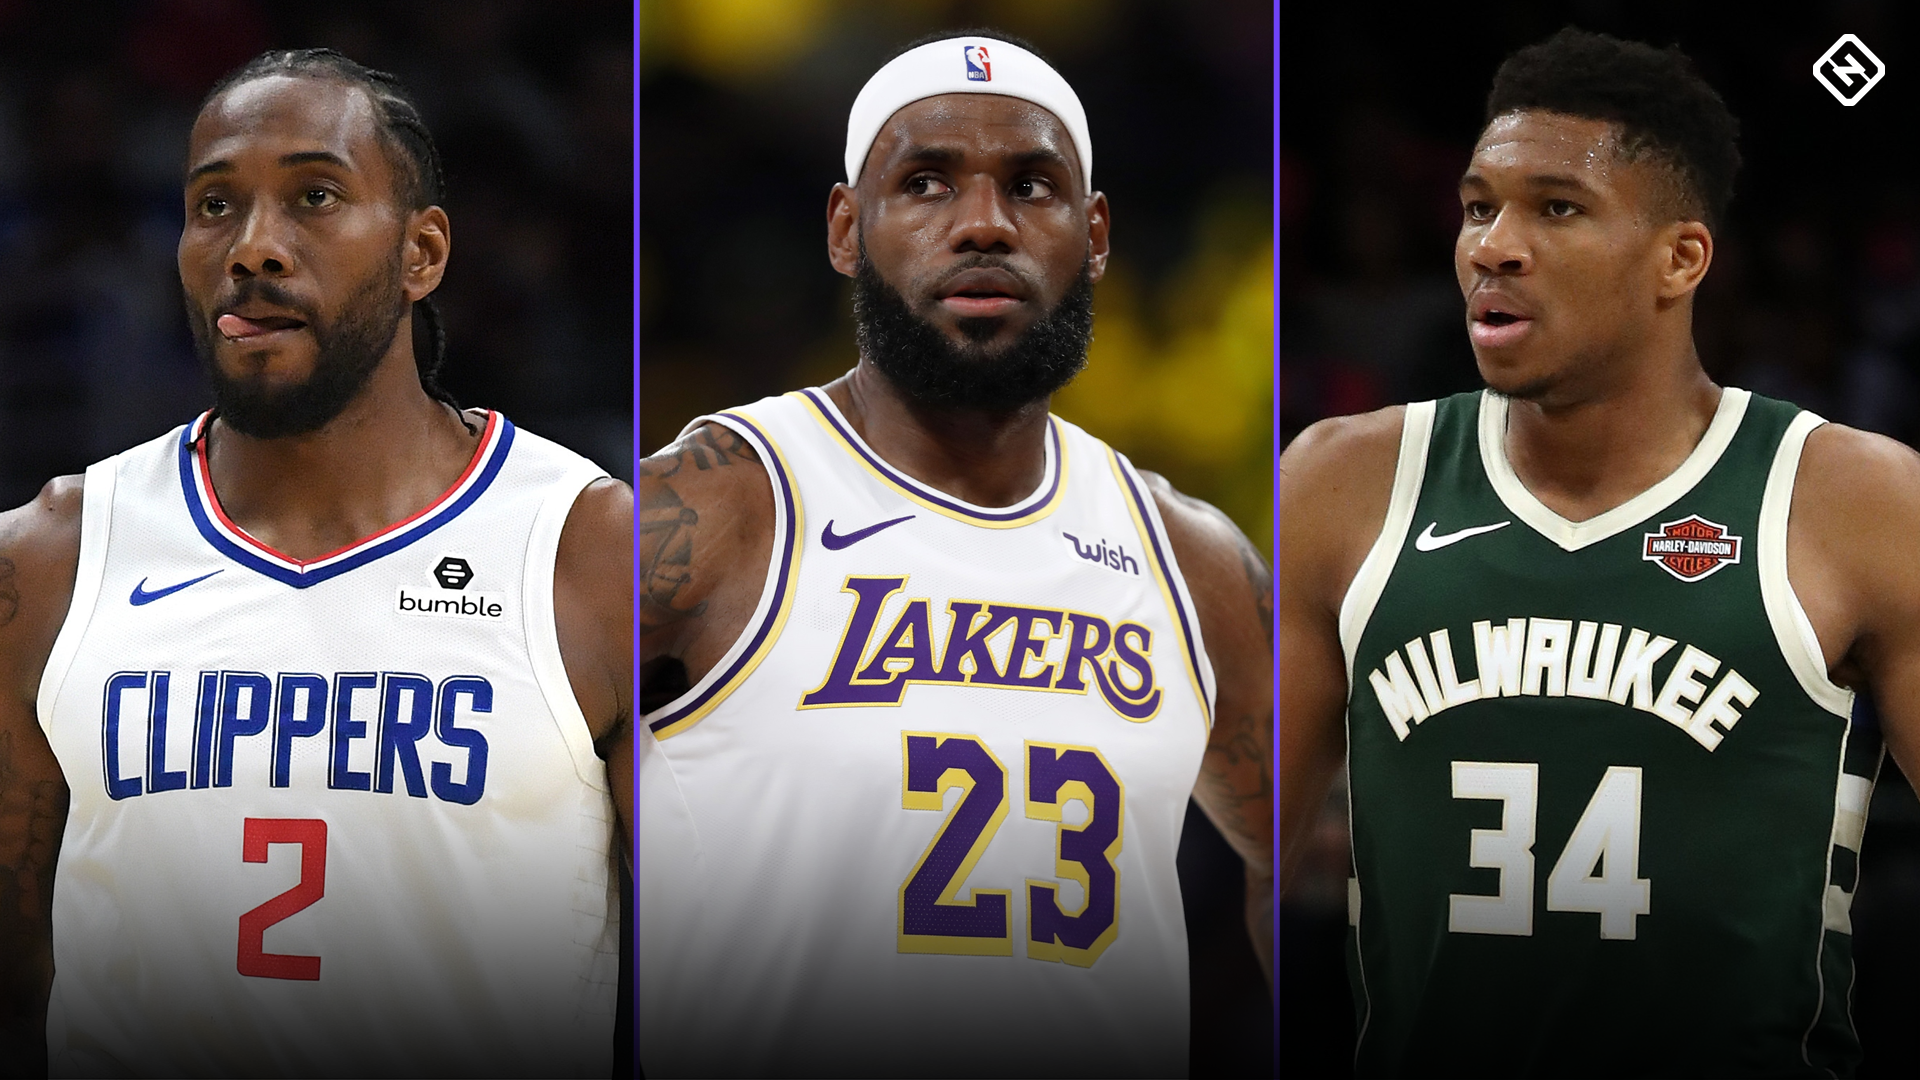 Nba Playoff Predictions 2020 Projecting The Hypothetical Bracket From Round 1 To The Nba Finals Sporting News